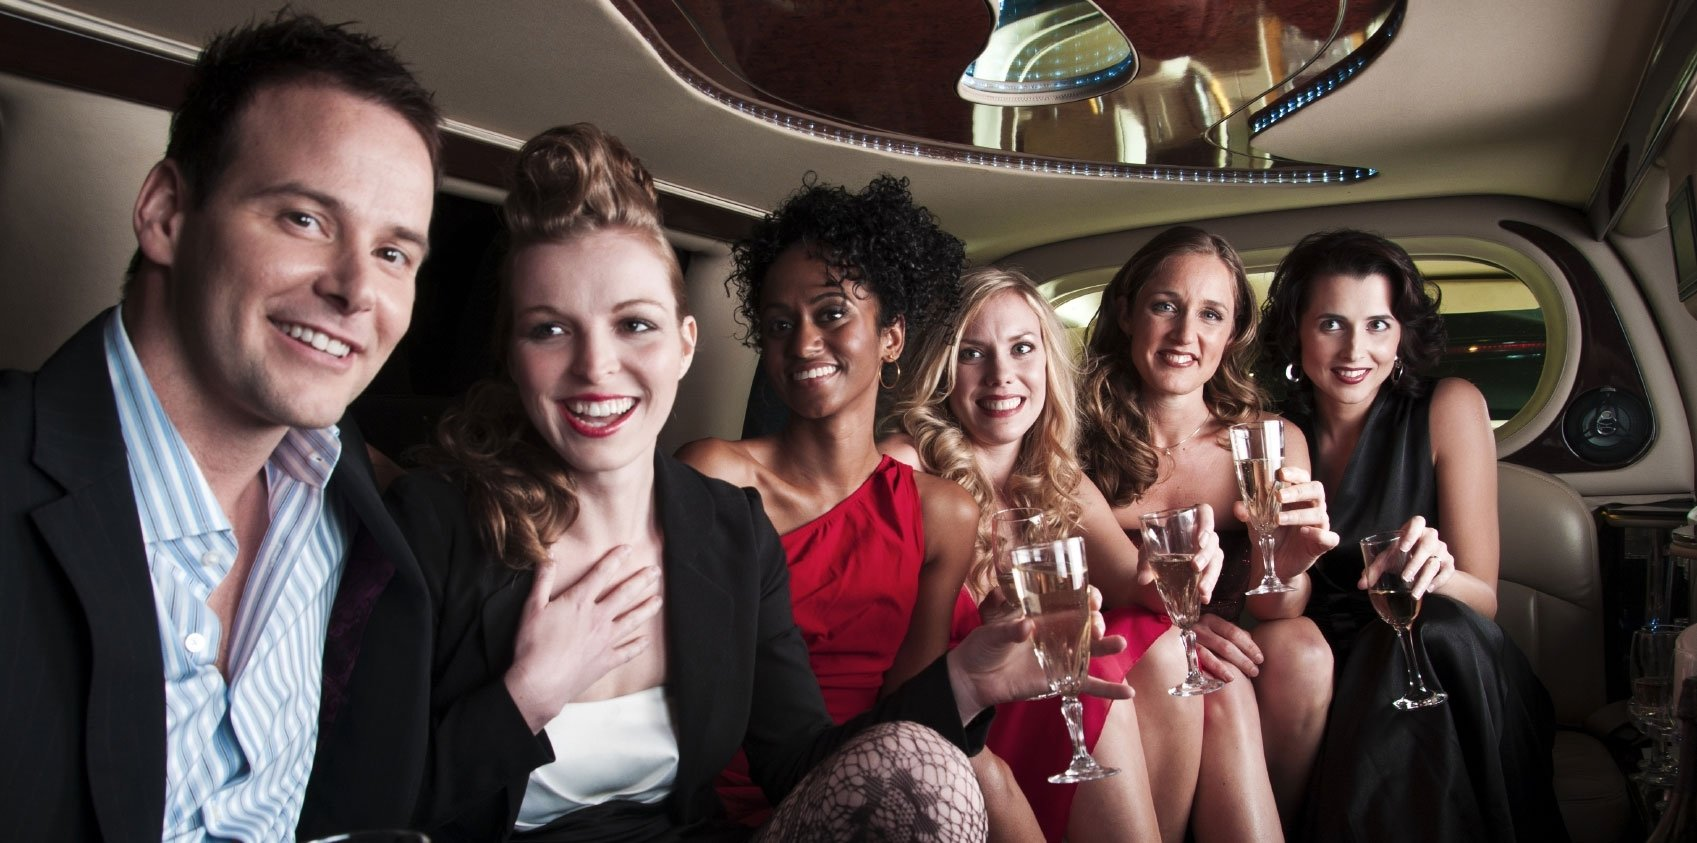 special occasions | kansas city (mo) limo service, airport shuttle